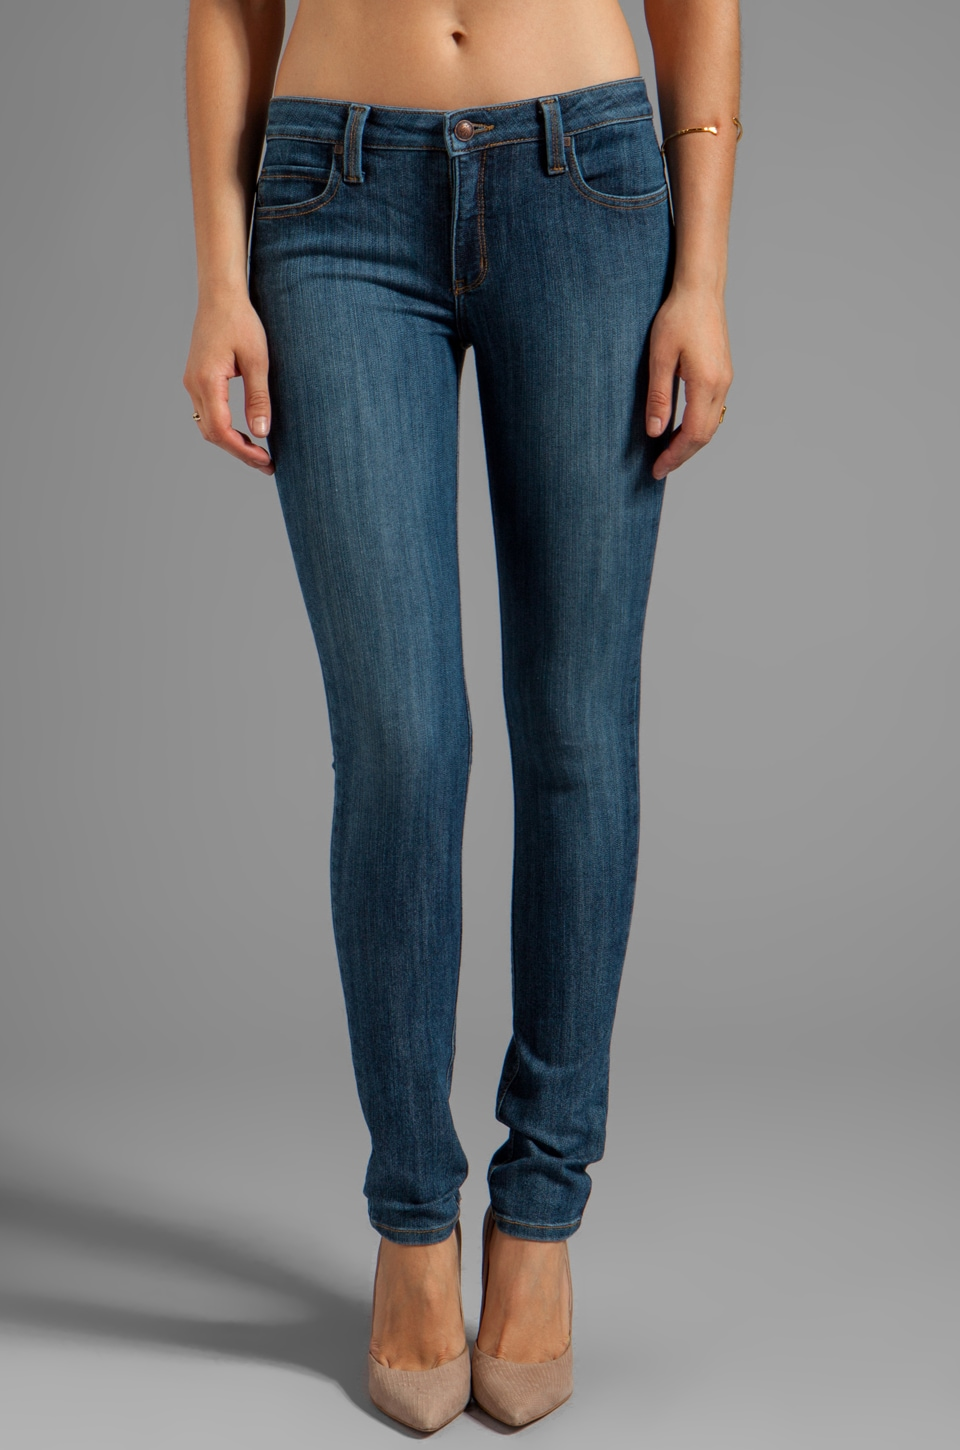 Frankie B. Jeans Perfect Mid Rise Skinny in Venus Blue